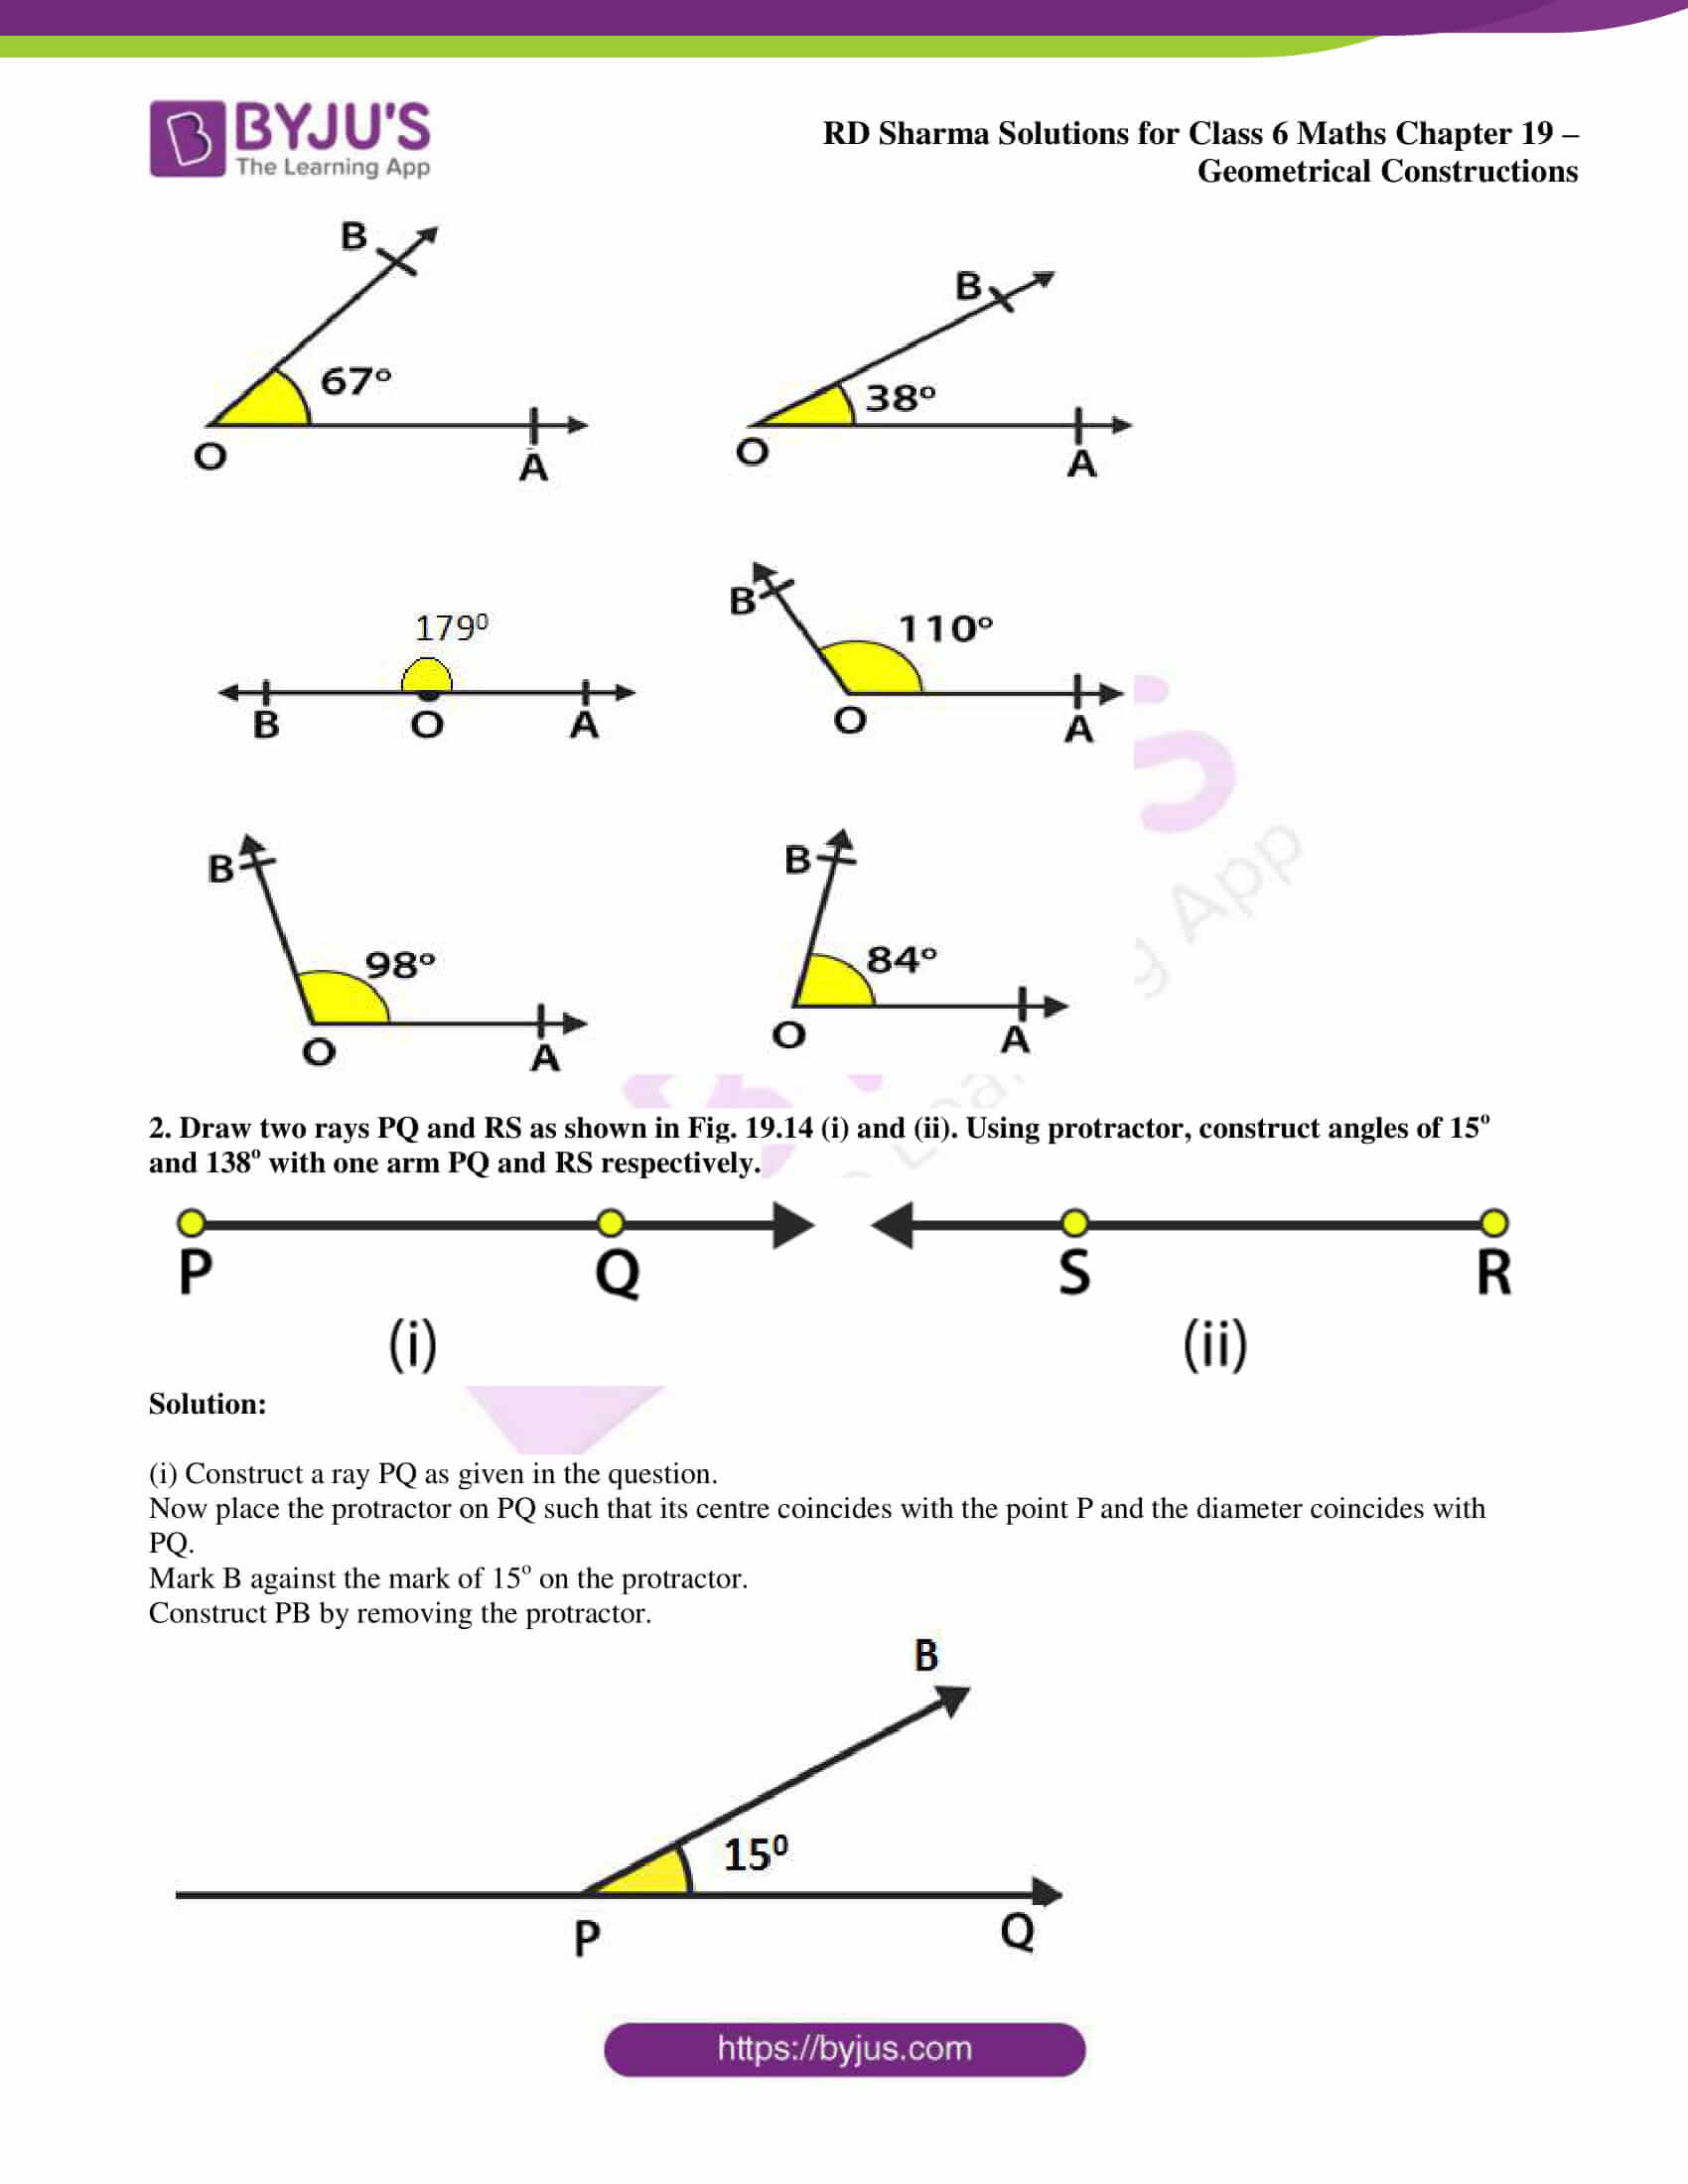 rd sharma solutions nov2020 class 6 maths chapter 19 exercise 4 2